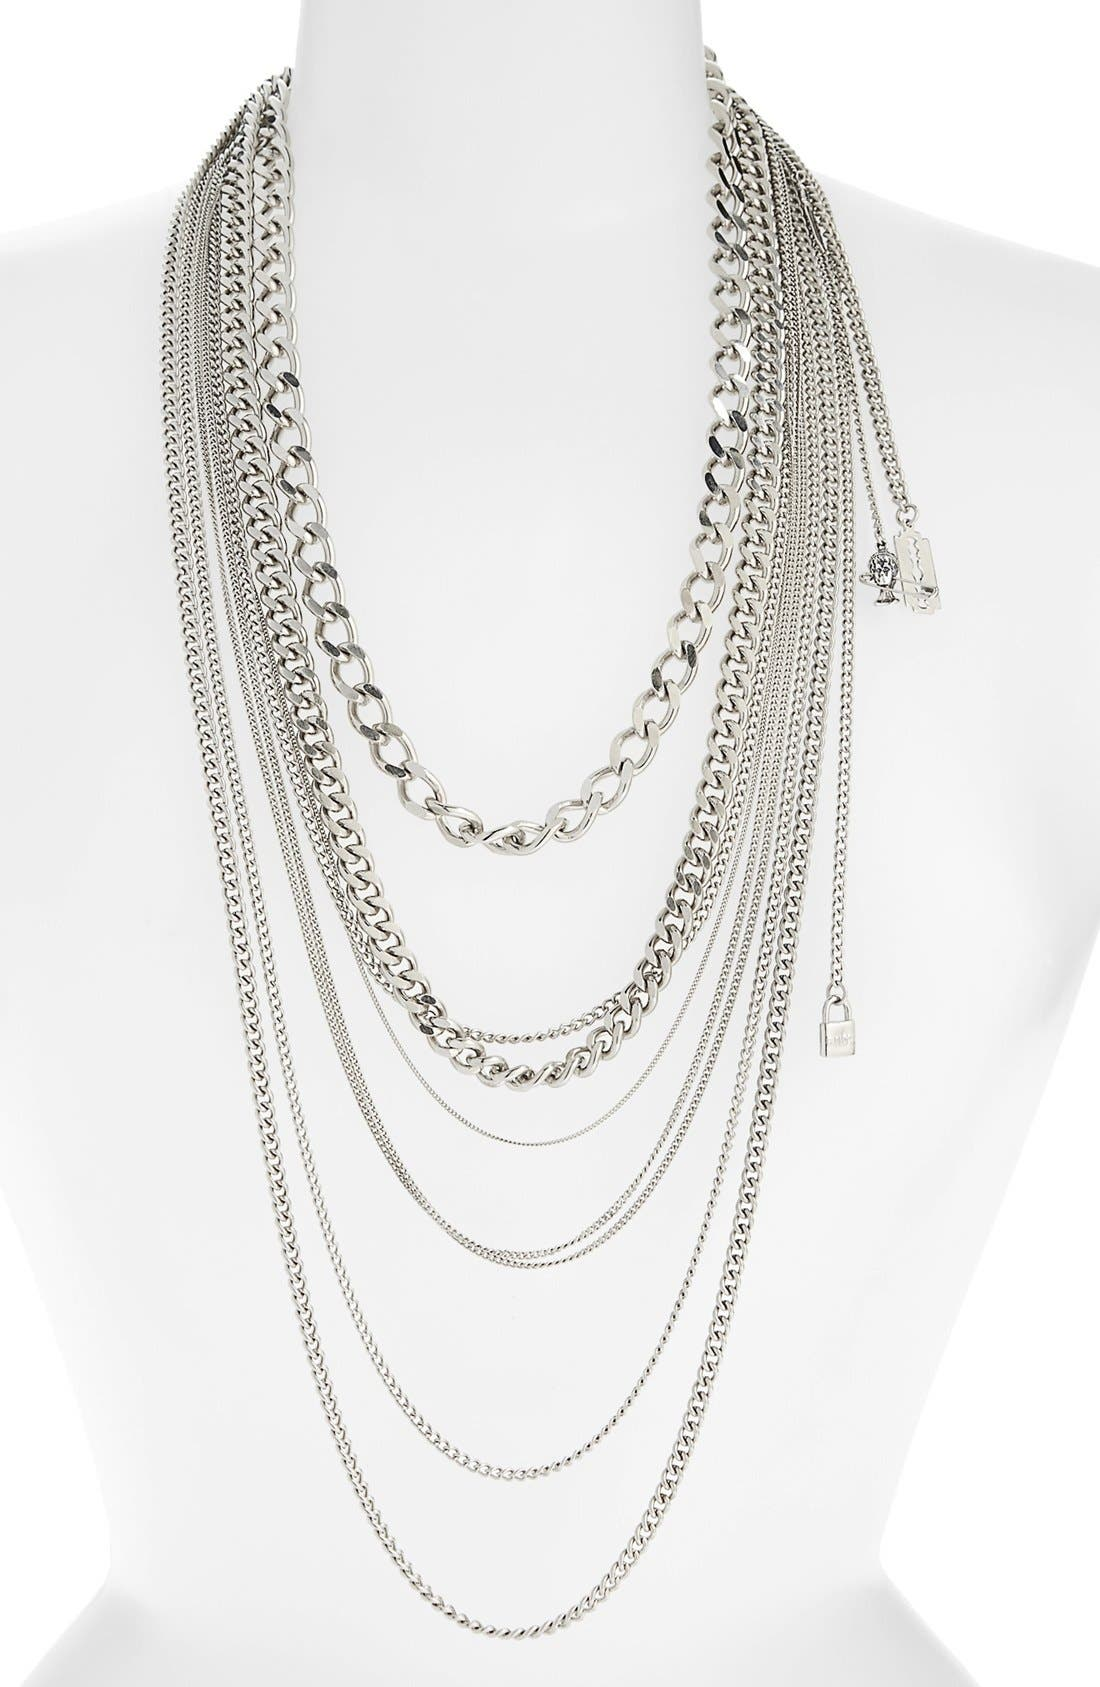 Main Image - Tom Binns 'Charm Offensive' Multistrand Chain Necklace